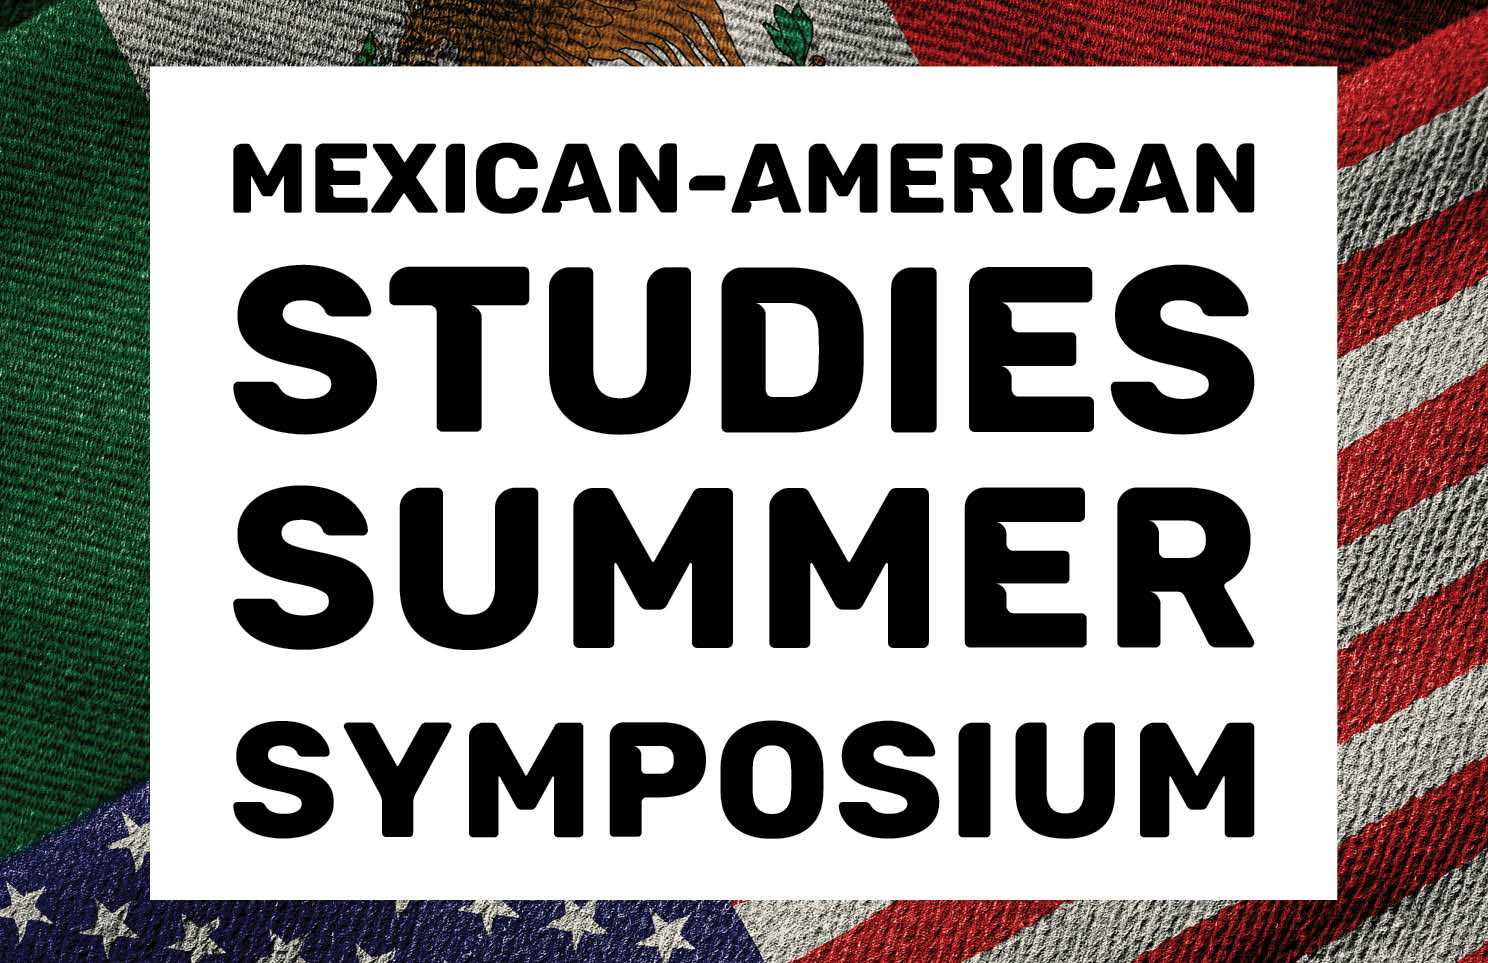 Mexican American Studies Summer Symposium